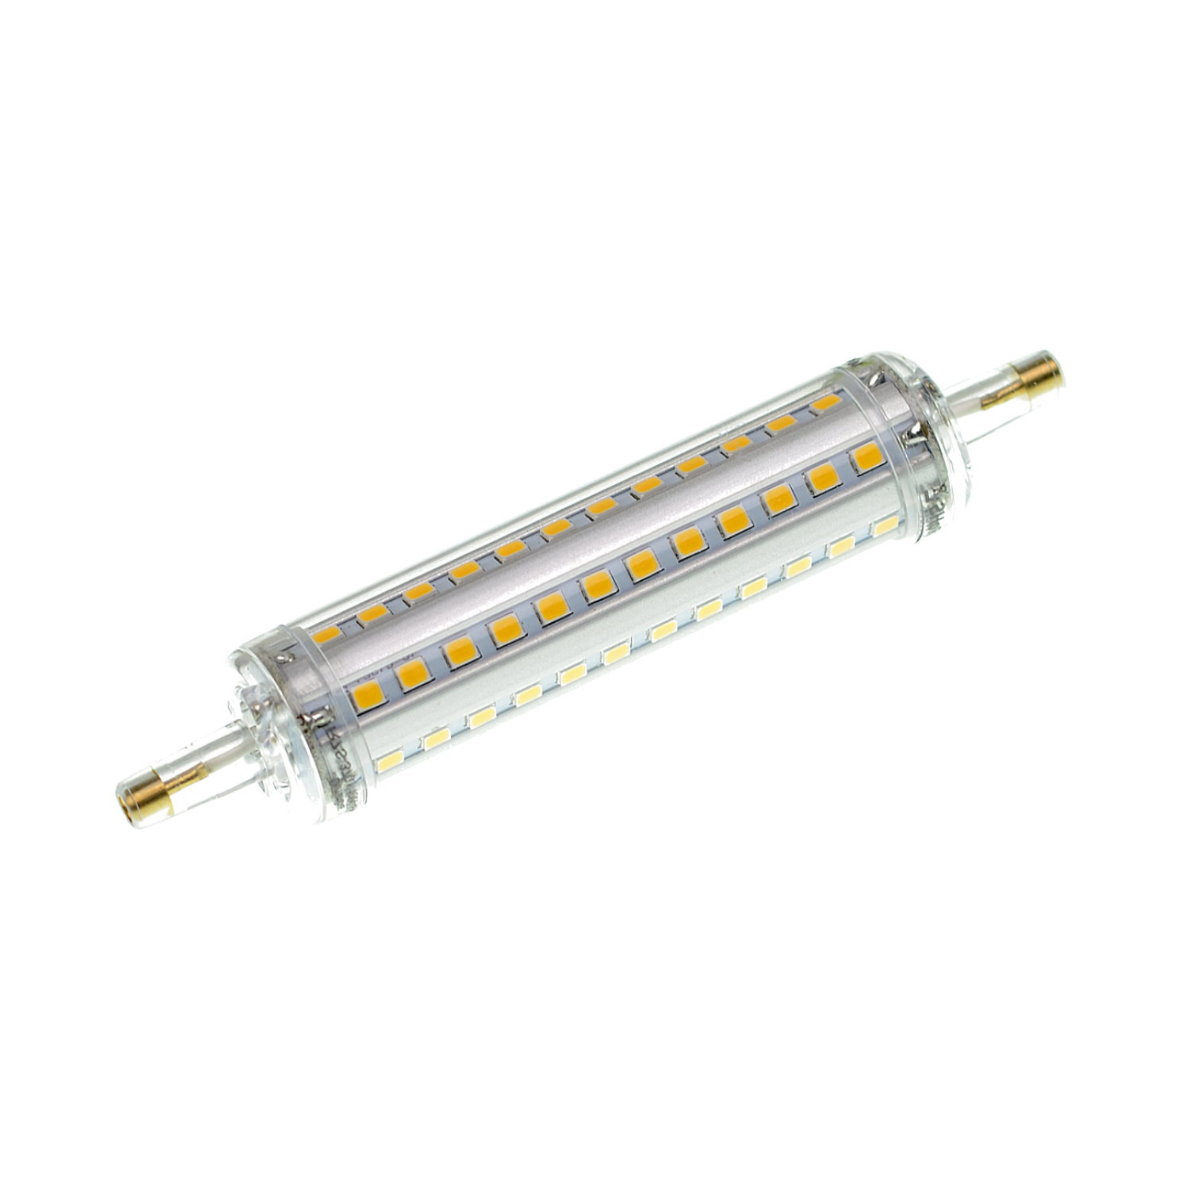 Led stab leuchtmittel r7s dimmbar 118mm ip44 10w 1200lm for Leuchtmittel led